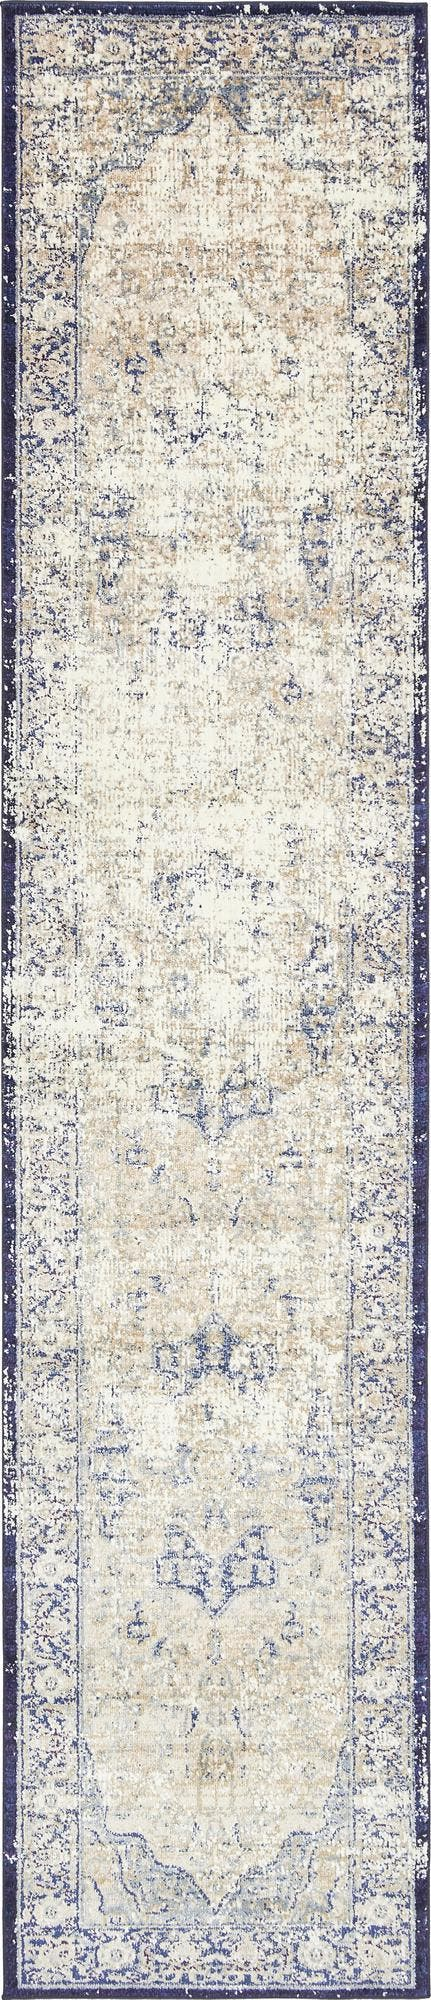 2' 7 x 12' 2 Lexington Runner Rug main image